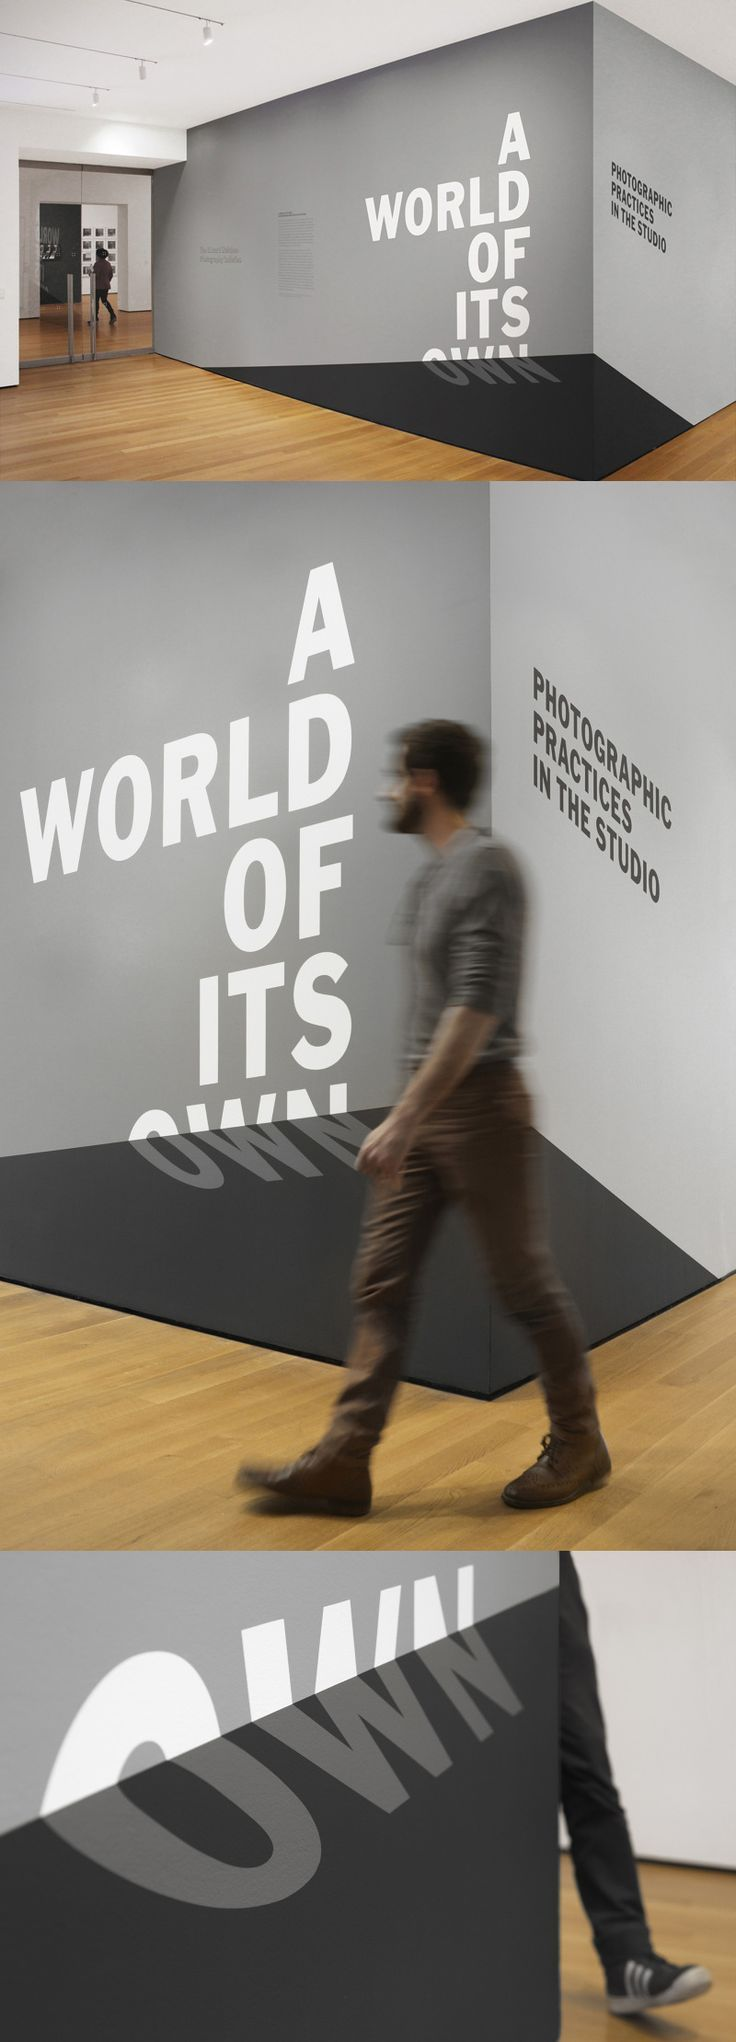 A World Of Its Own by Moma Design Studio